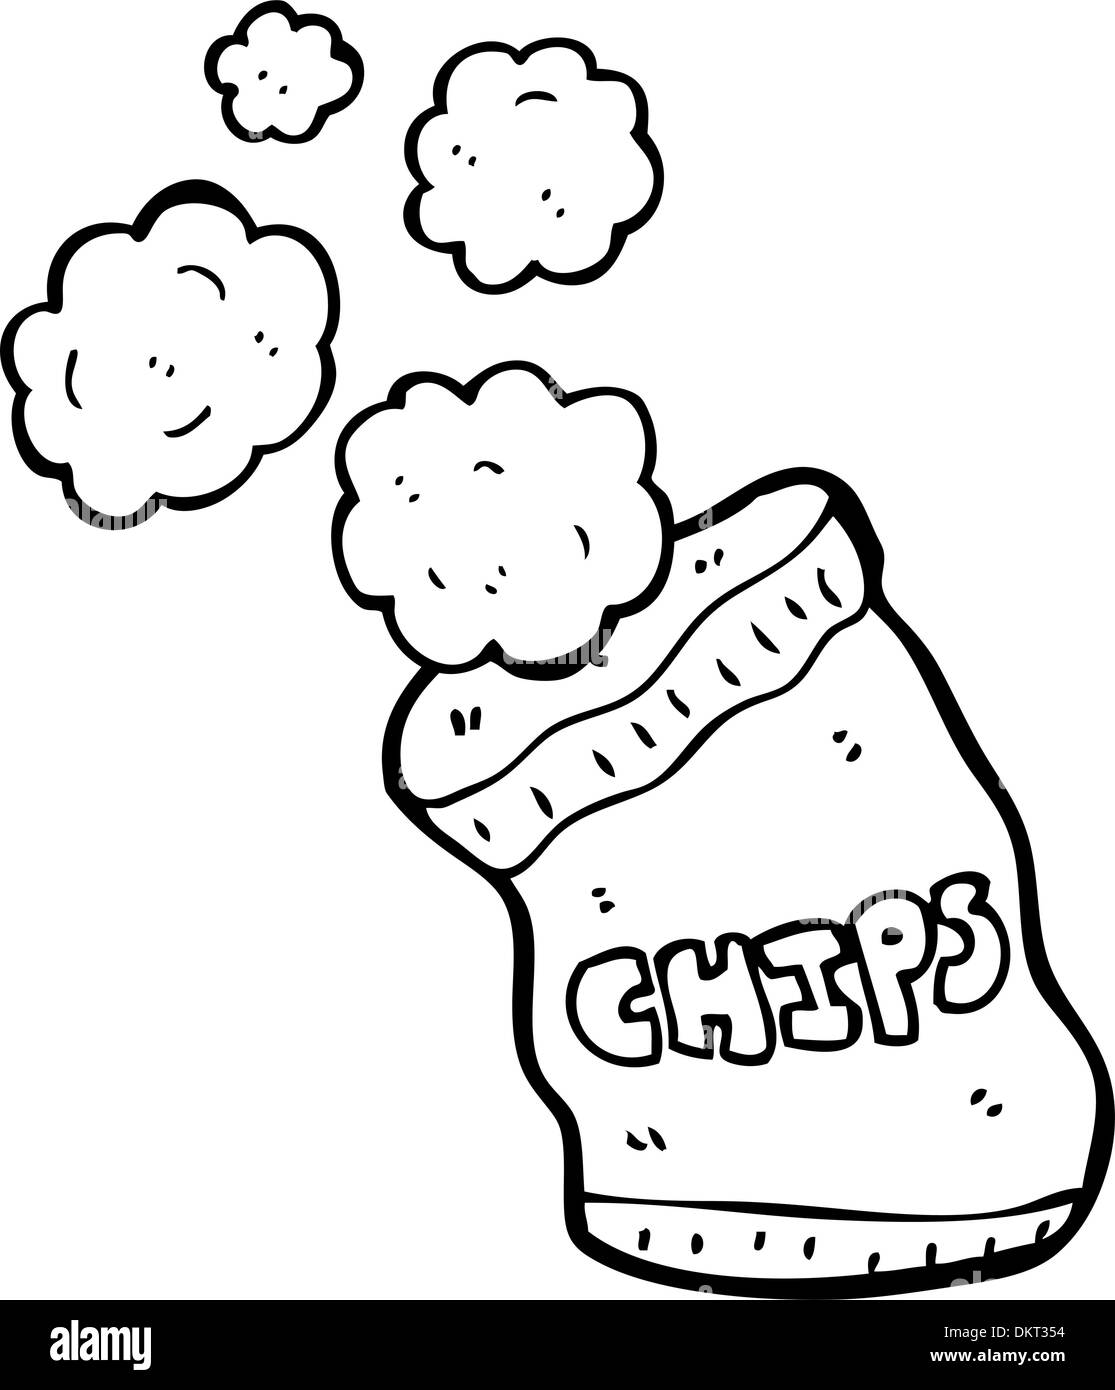 Cartoon papas fritas Imagen De Stock